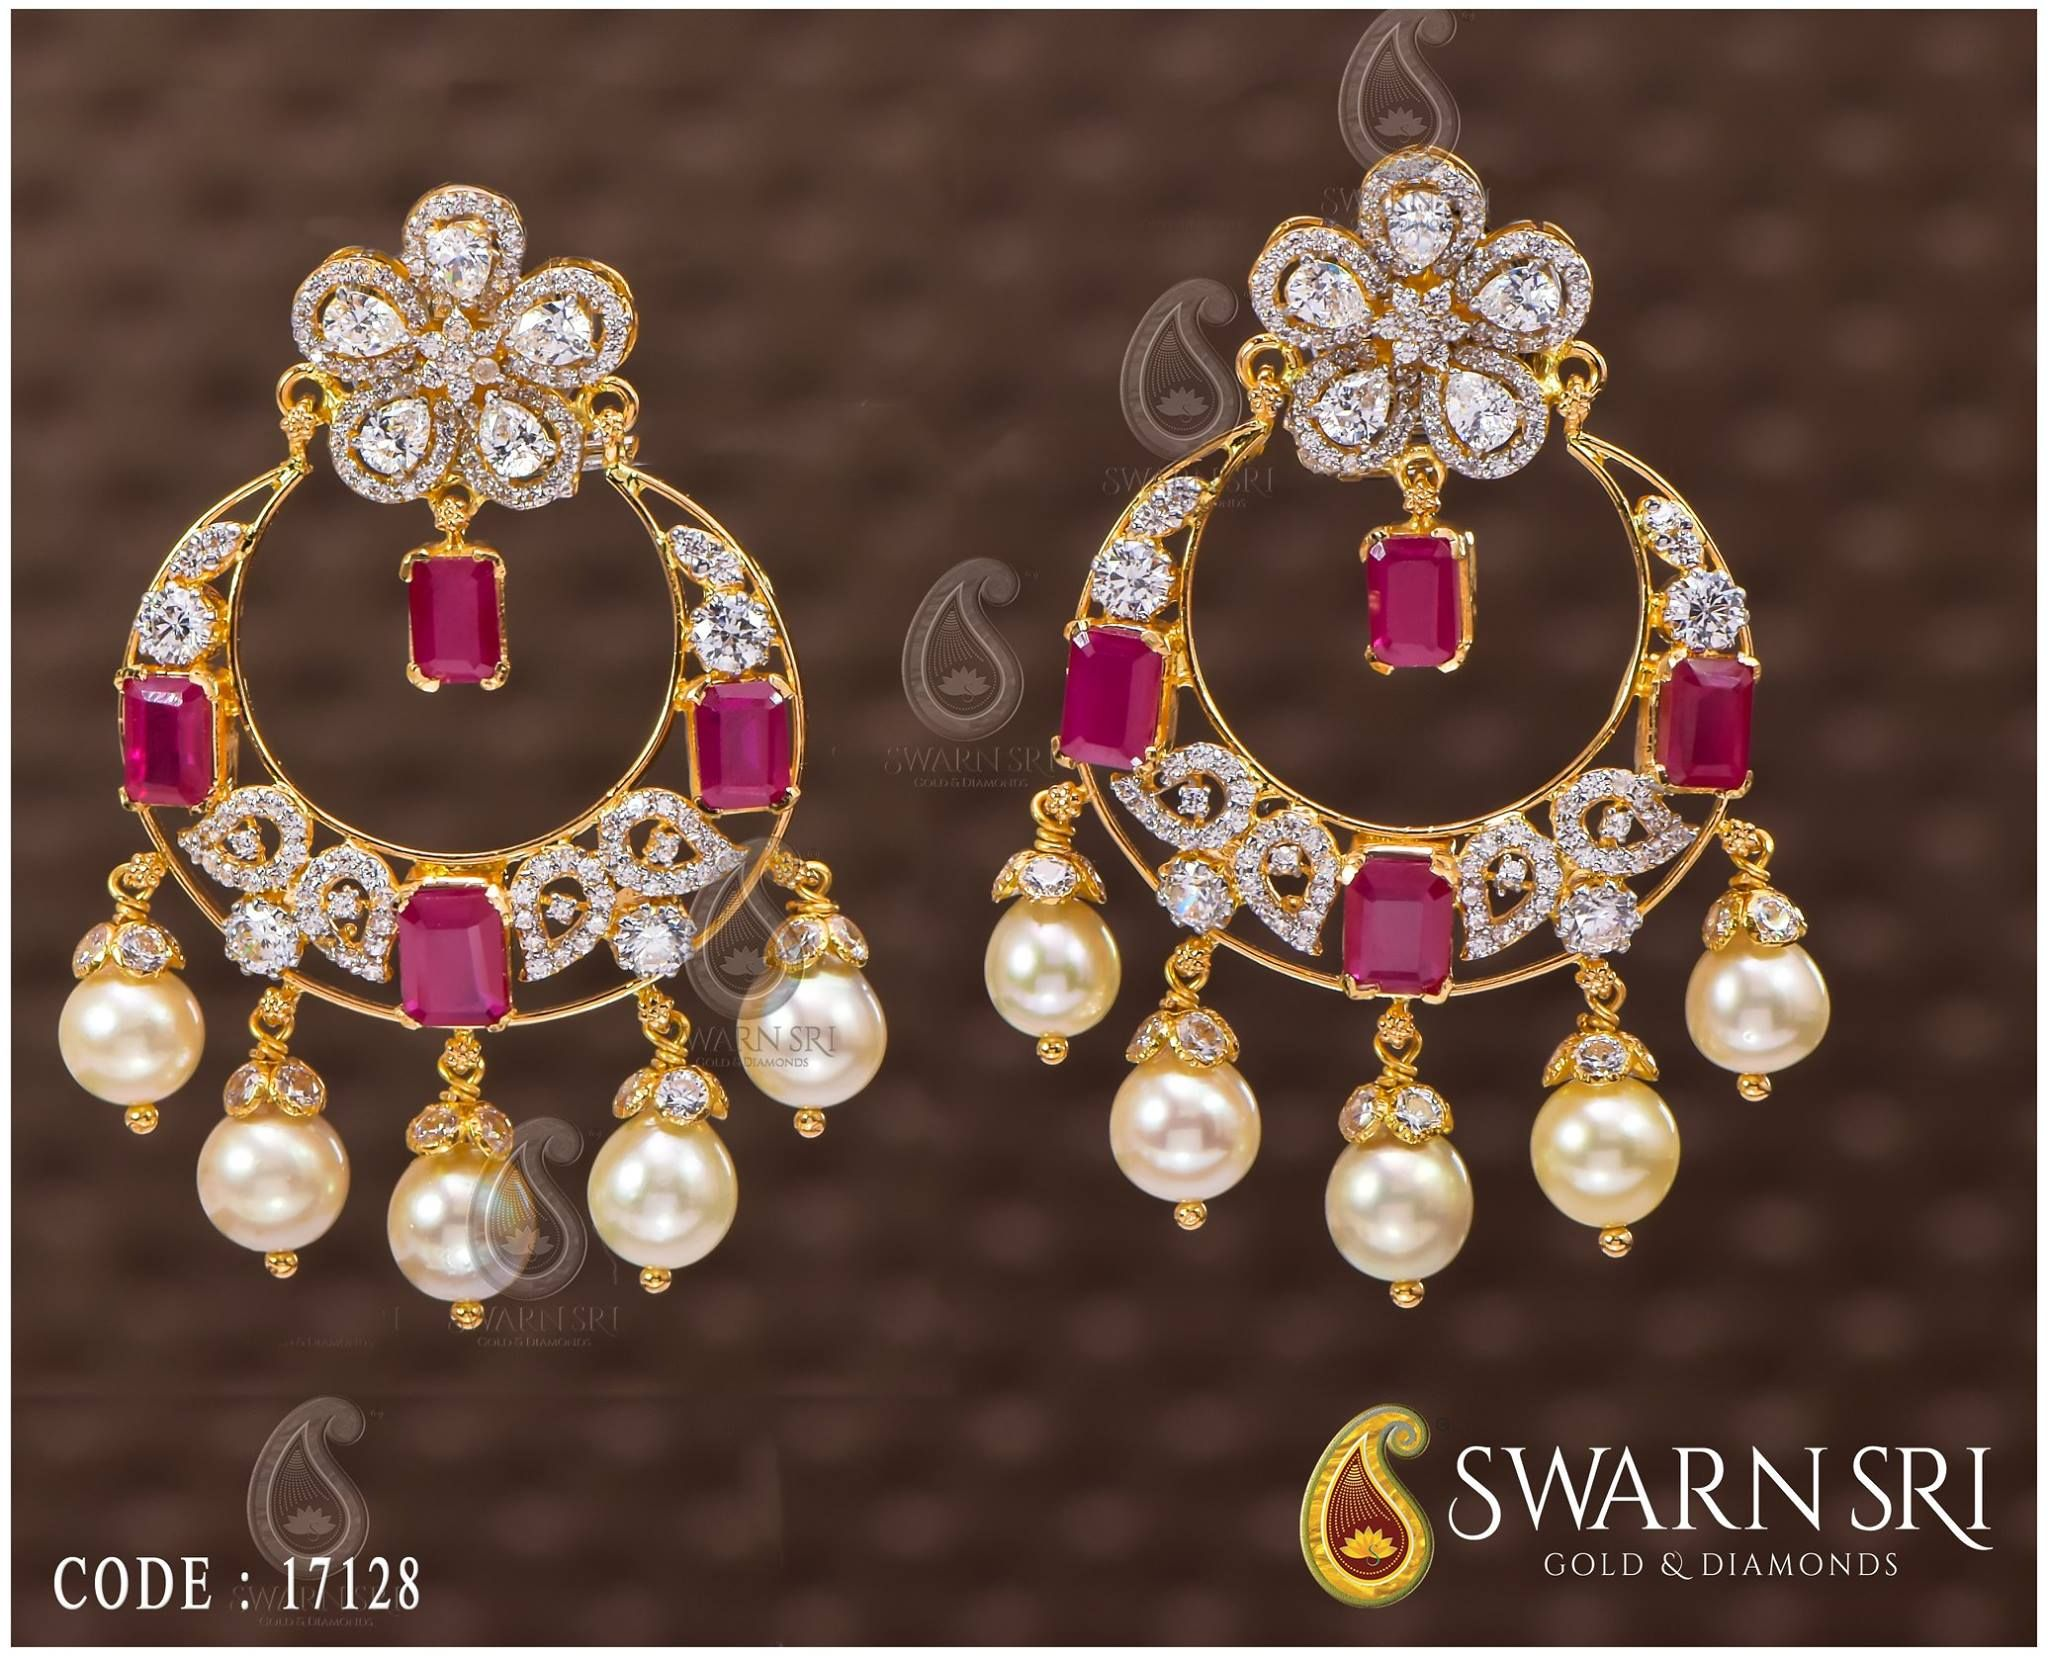 Beautiful gold chaandbali studded with uncut diamonds Earrings with